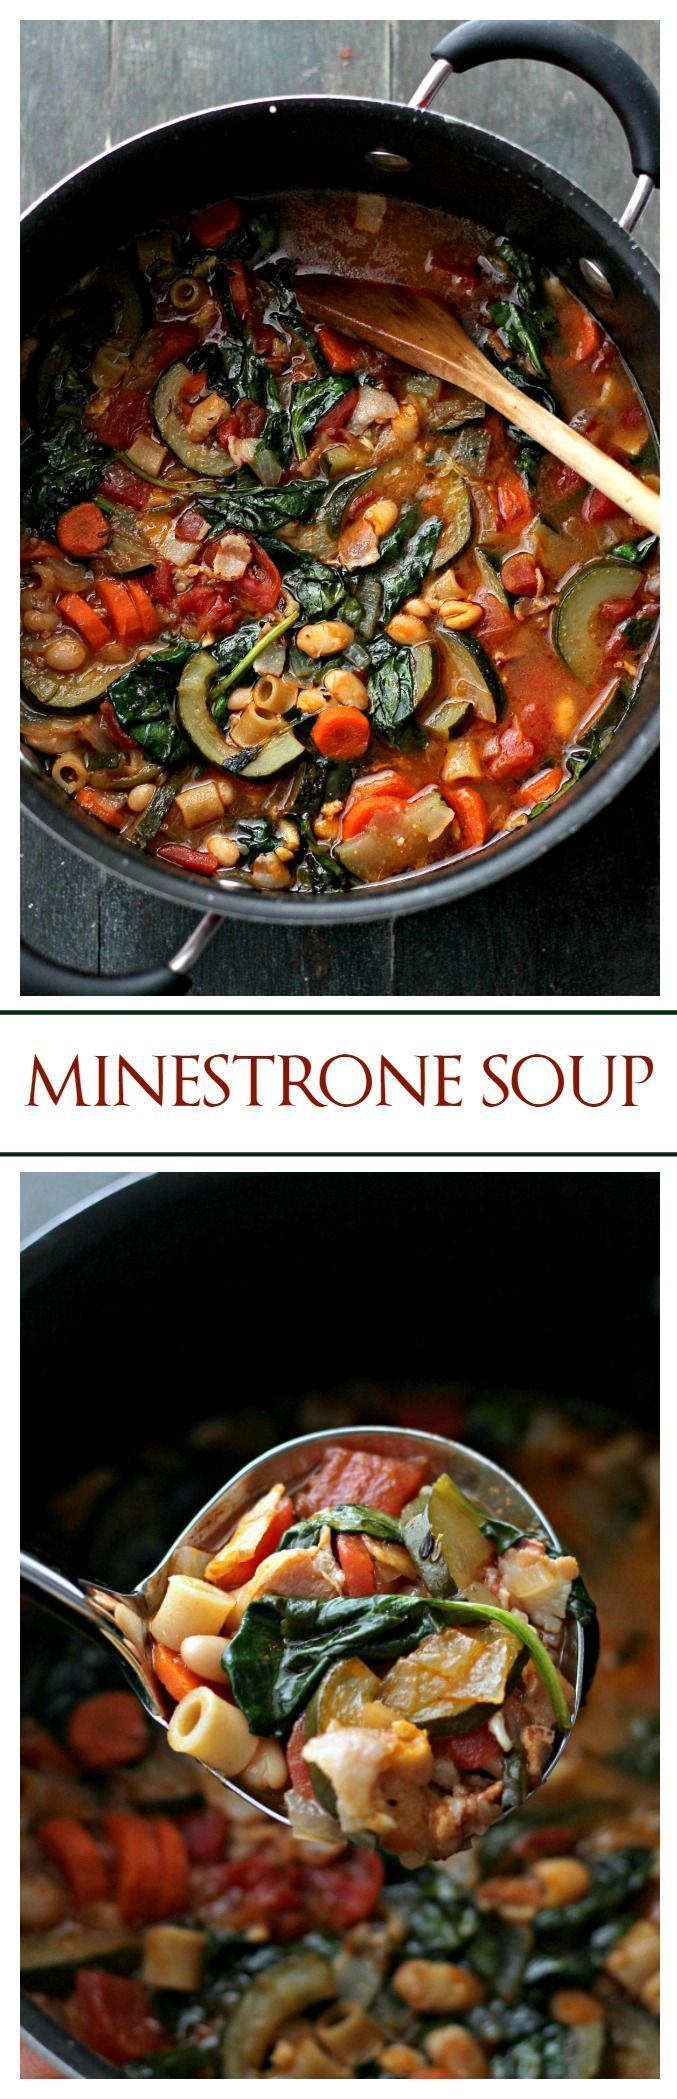 Minestrone Soup | www.diethood.com | Packed with vegetables, bacon and pasta, this soup makes for a hearty, filling and delicious meal.